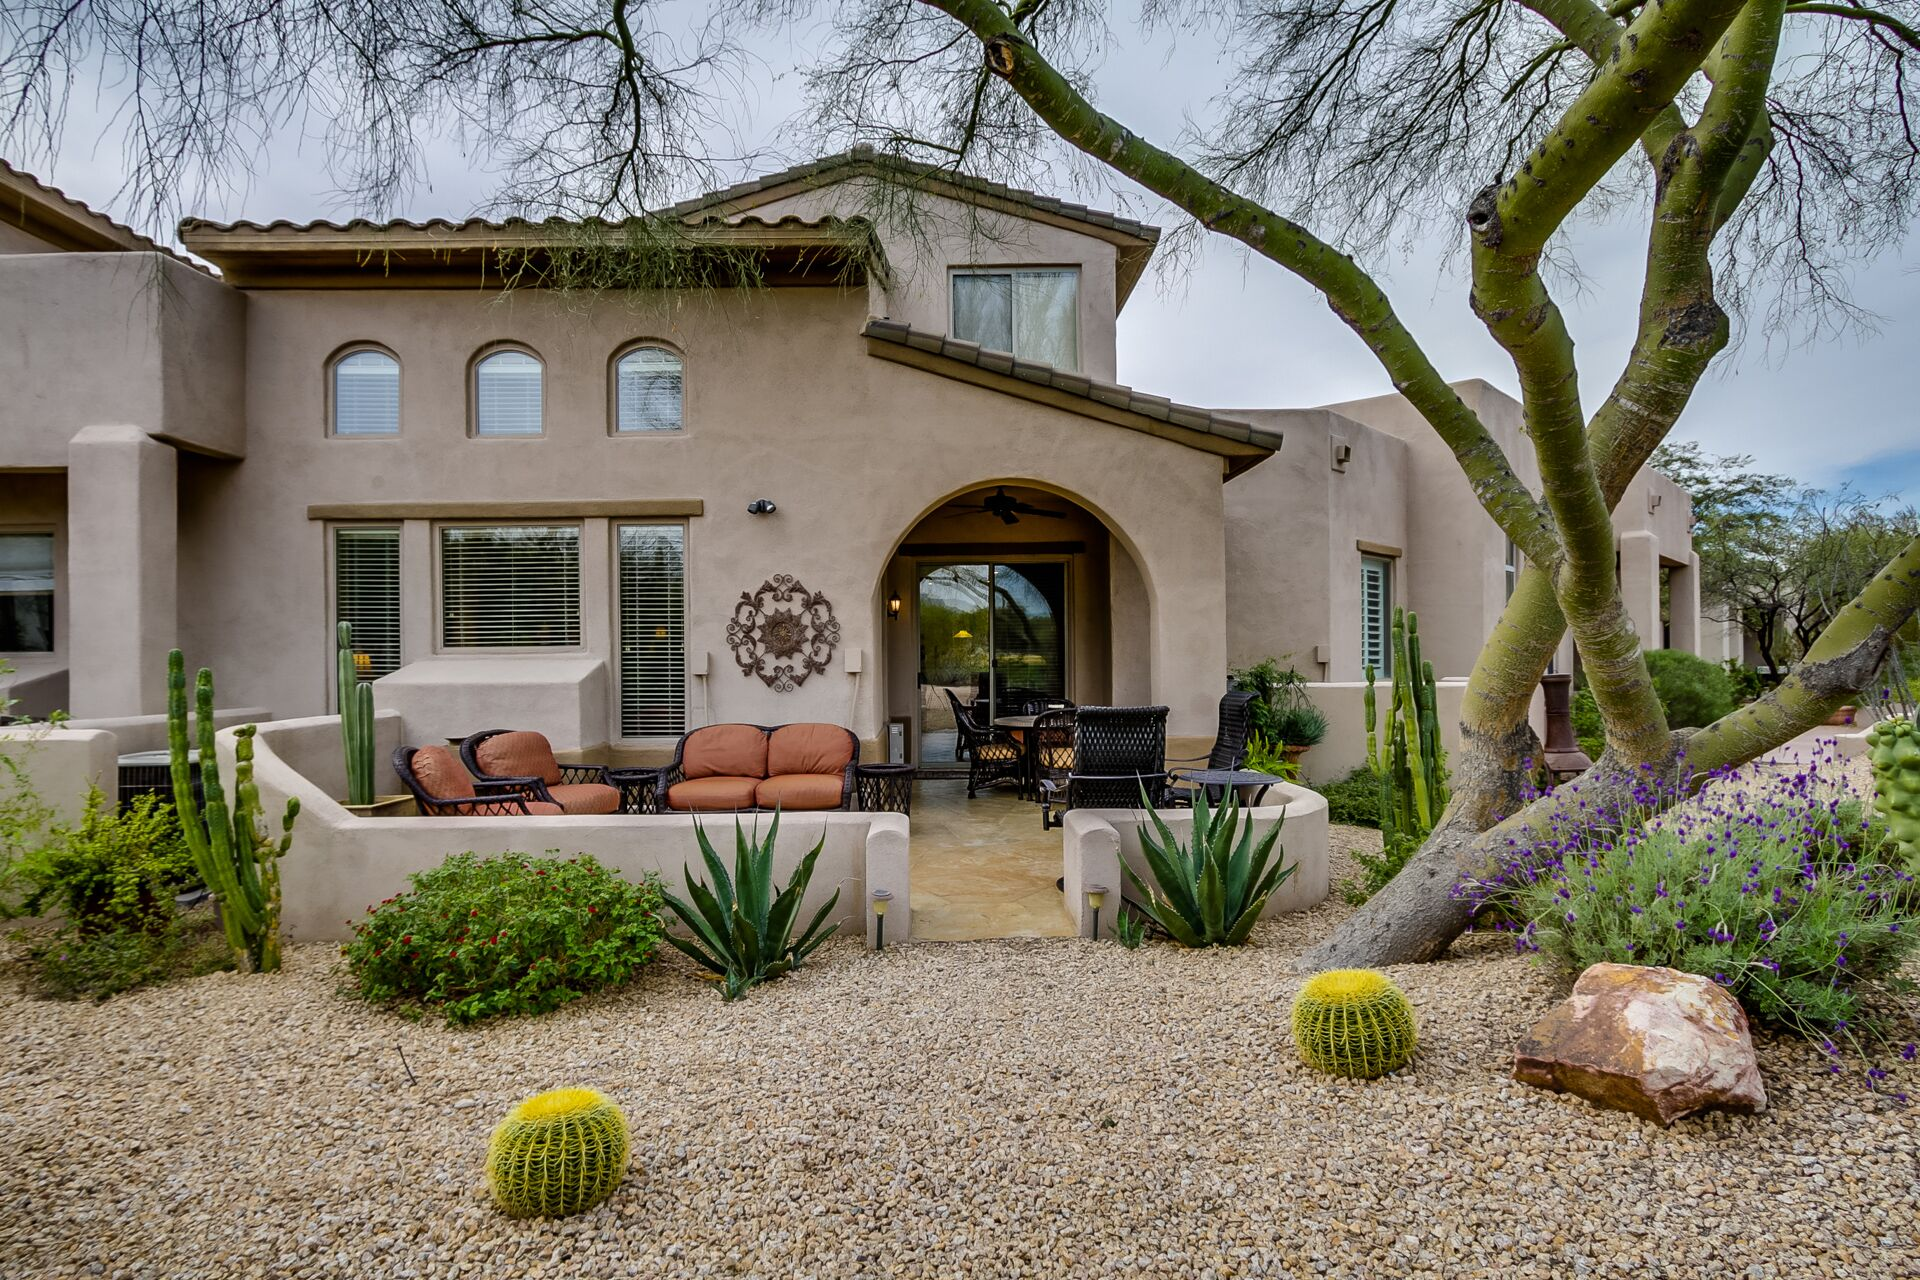 This is the Brand New Image Of Patio Homes for Sale Scottsdale